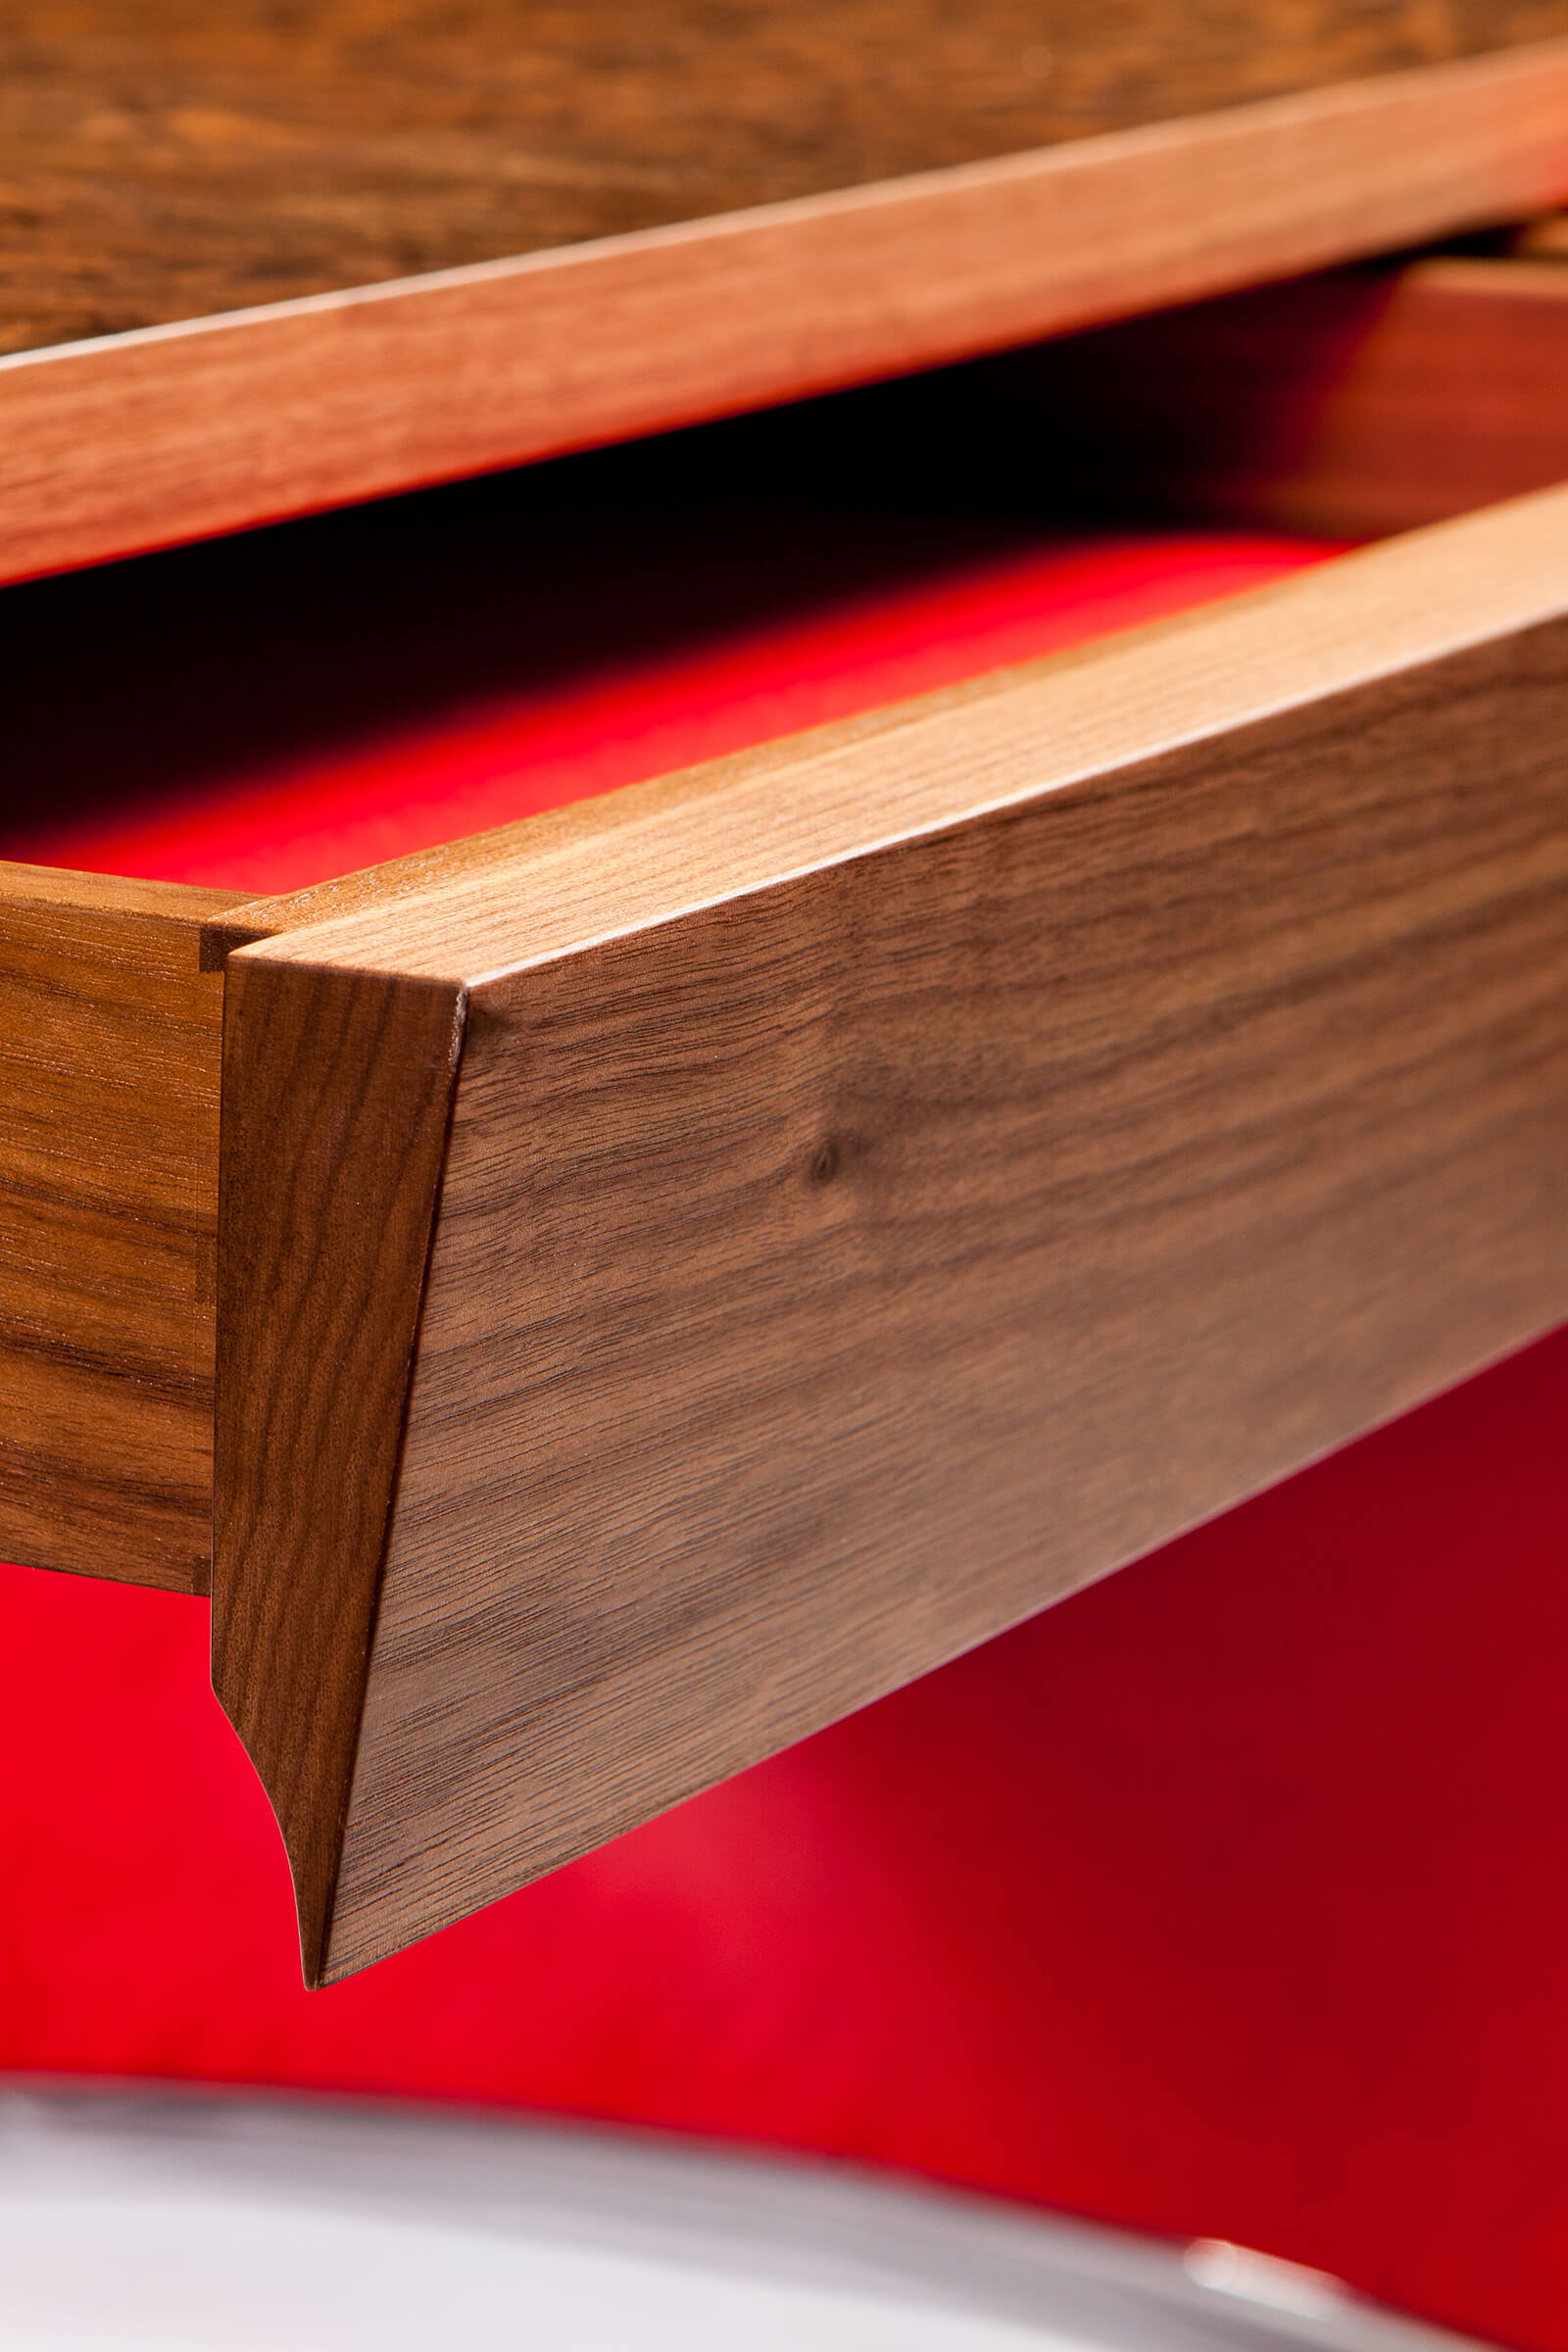 Detail of custom desk hand-made with exquisite craftsmanship